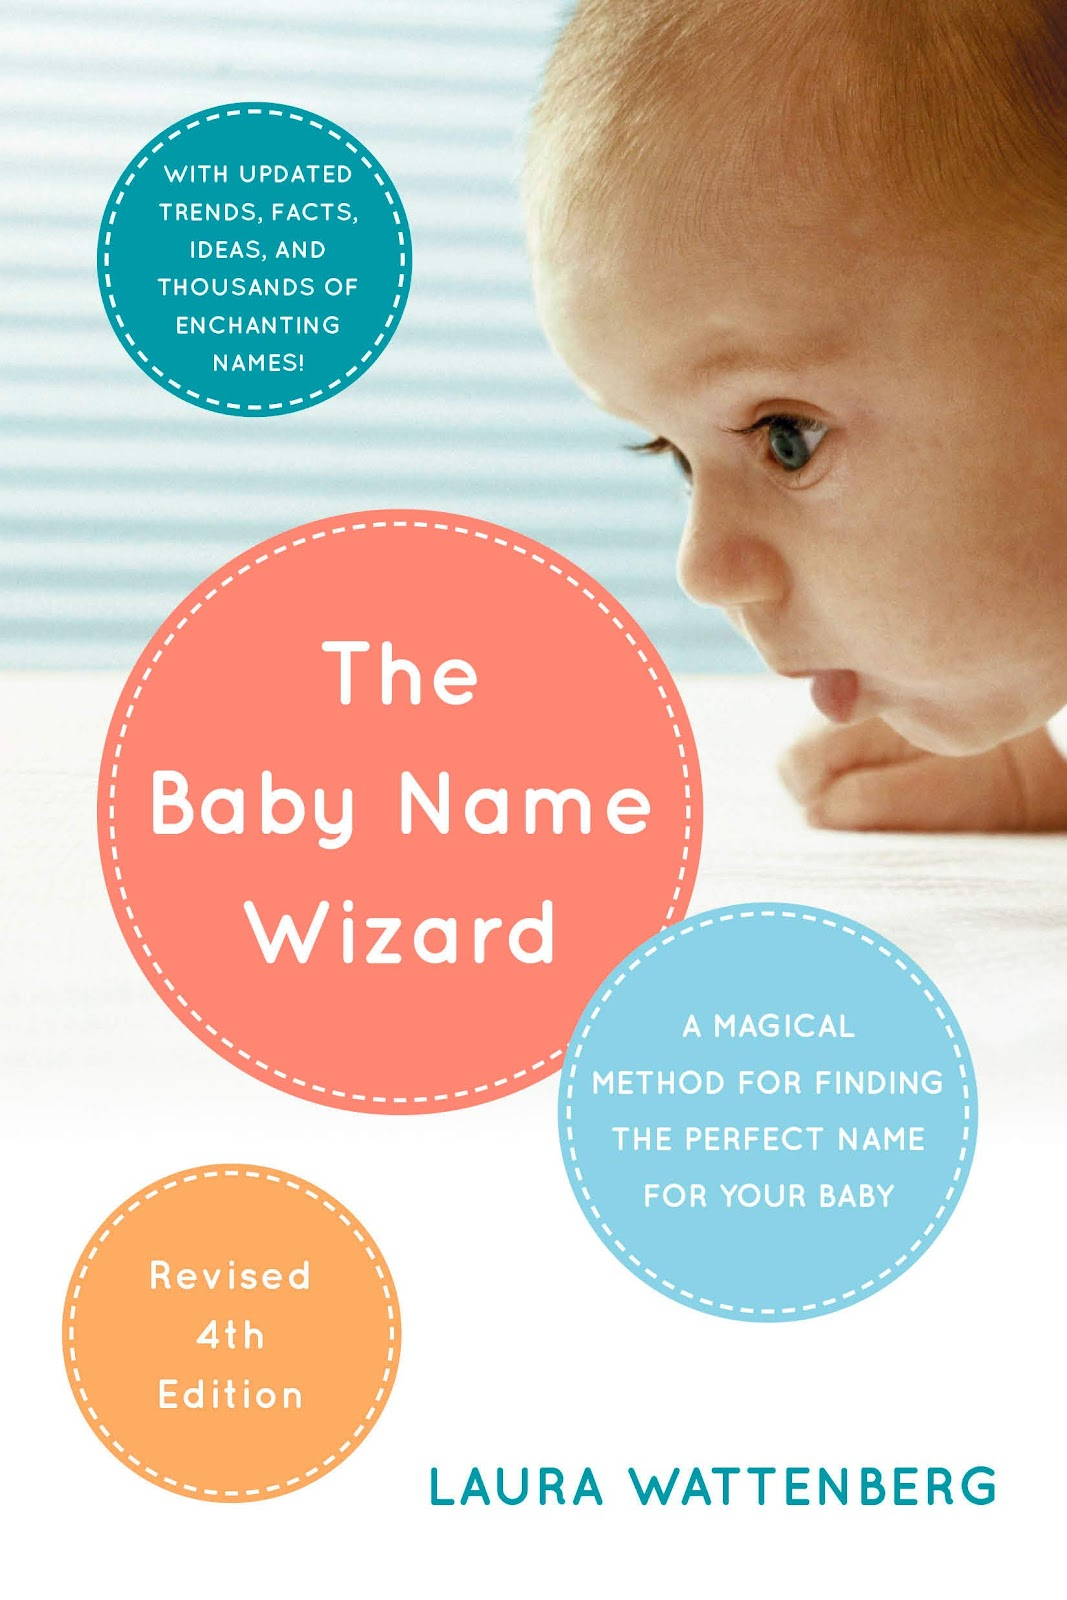 Best Informative Baby Name Book - The Baby Name Wizard